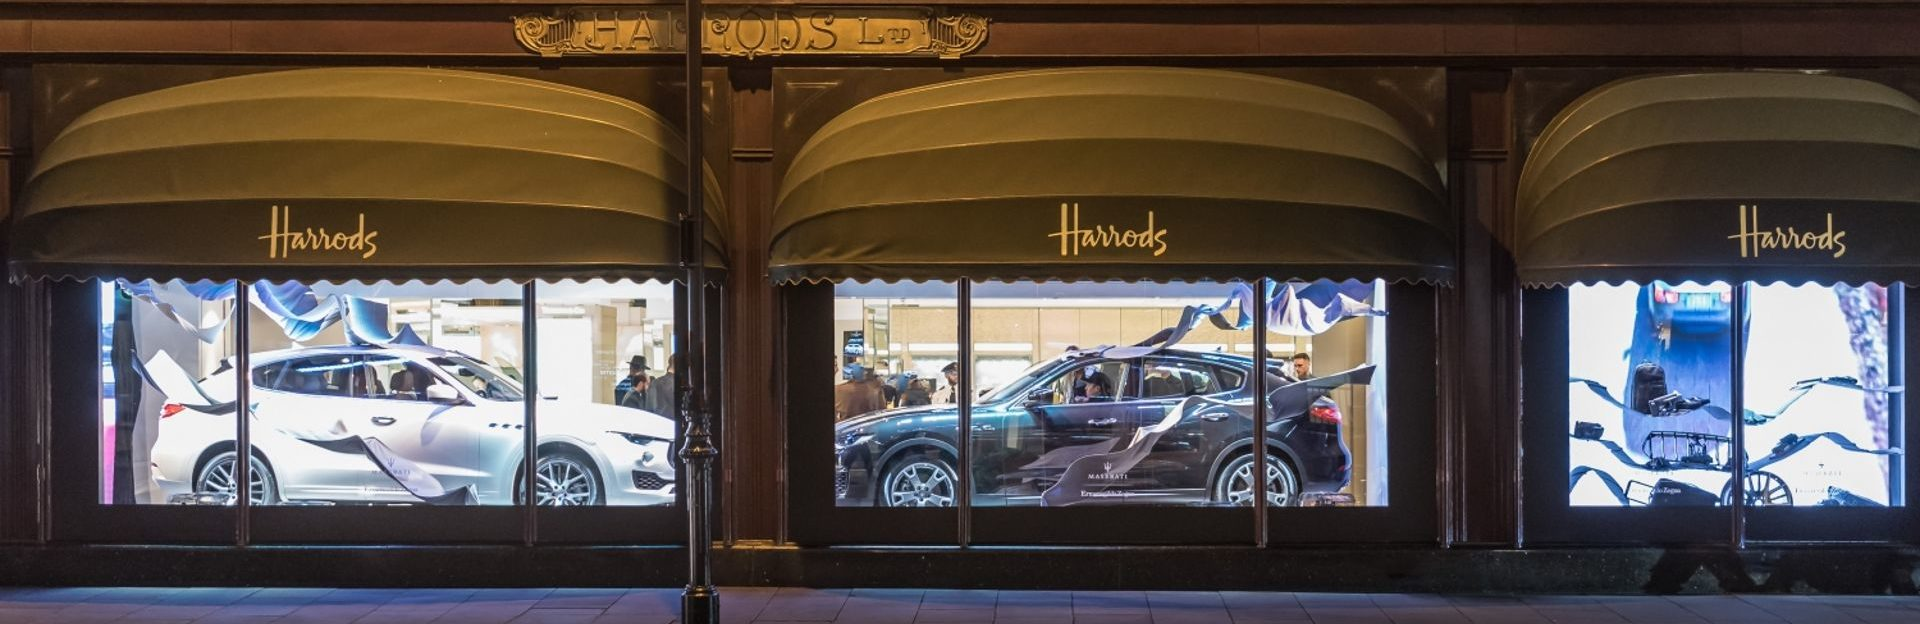 Da Harrods in vetrina la capsule collection Ermenegildo Zegna Exclusively for Maserati